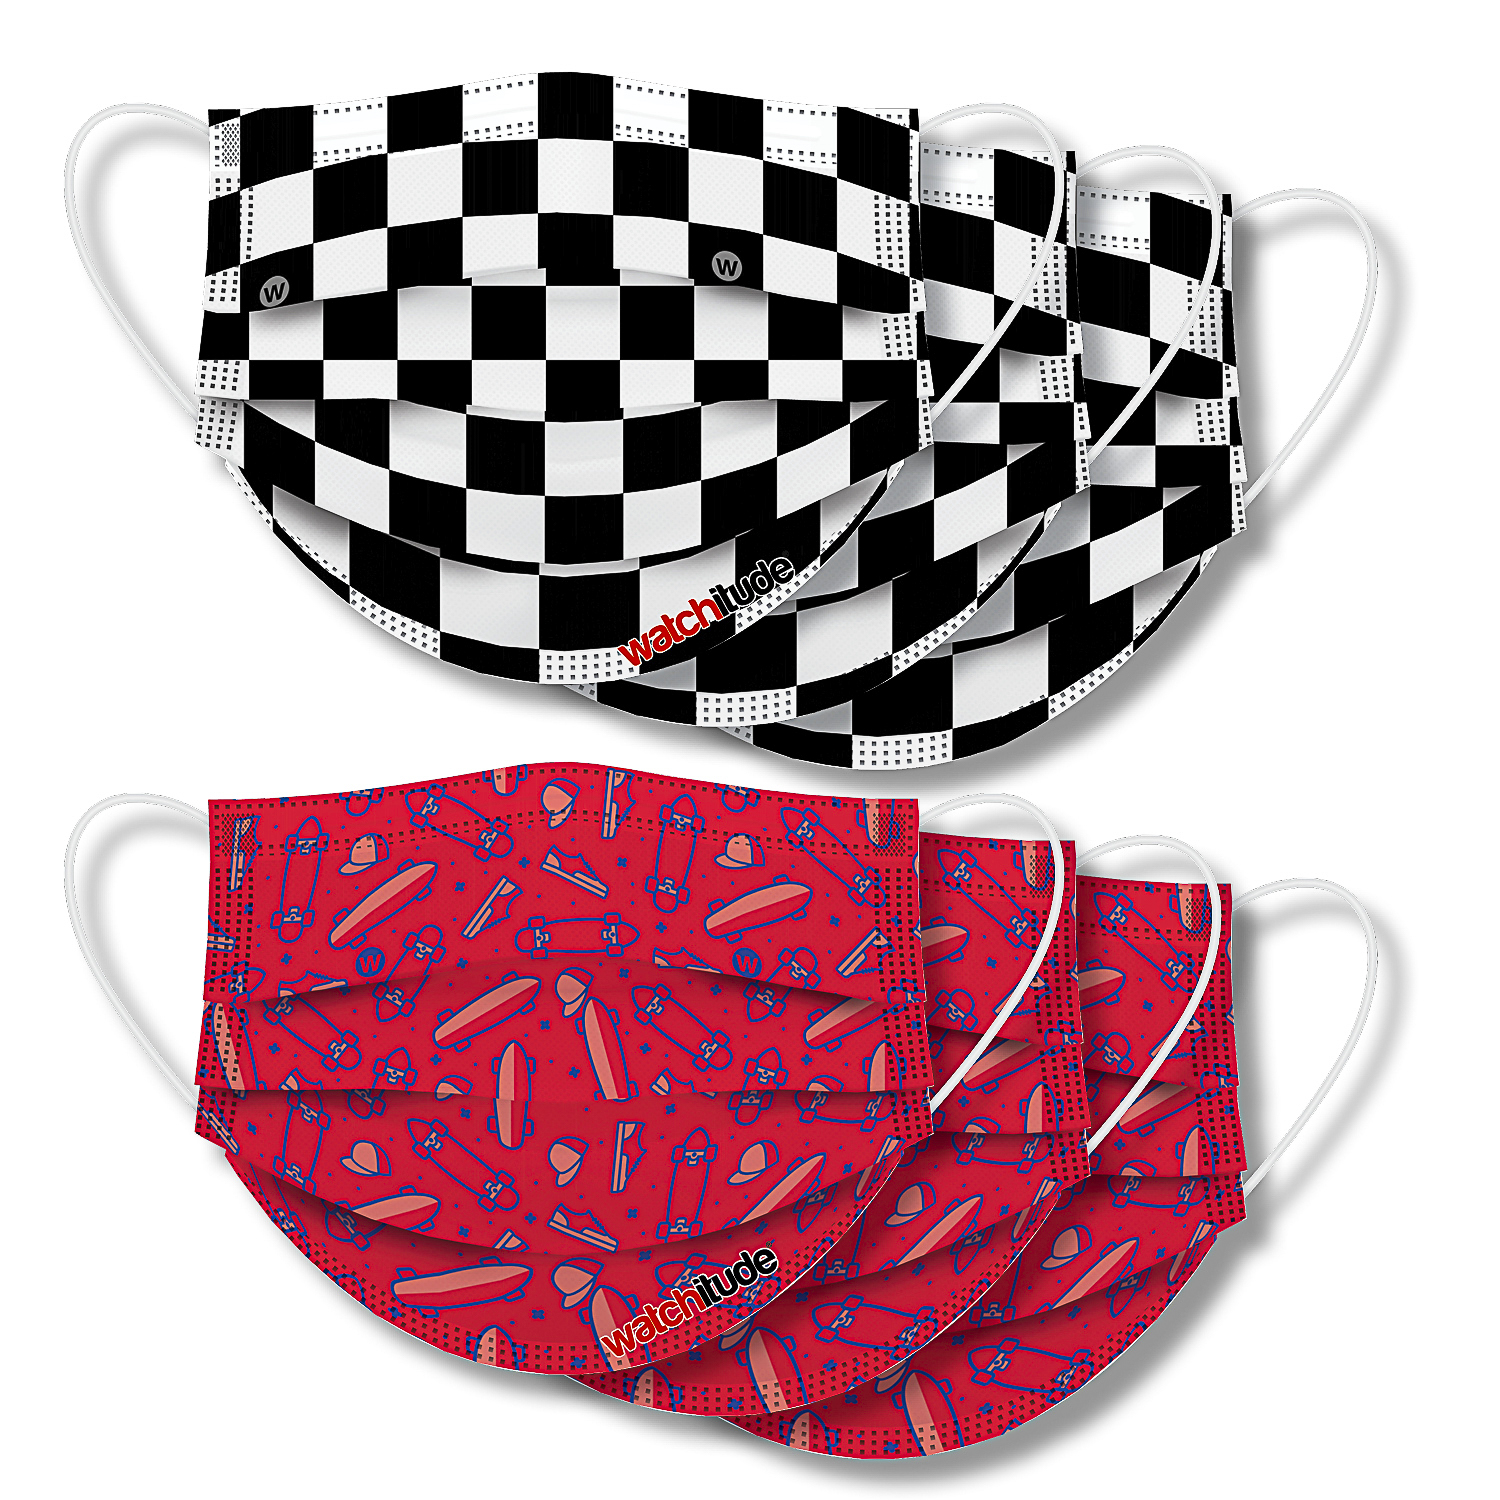 Skater & Checkers - Watchitude Kids Fun Masks (6-pack)